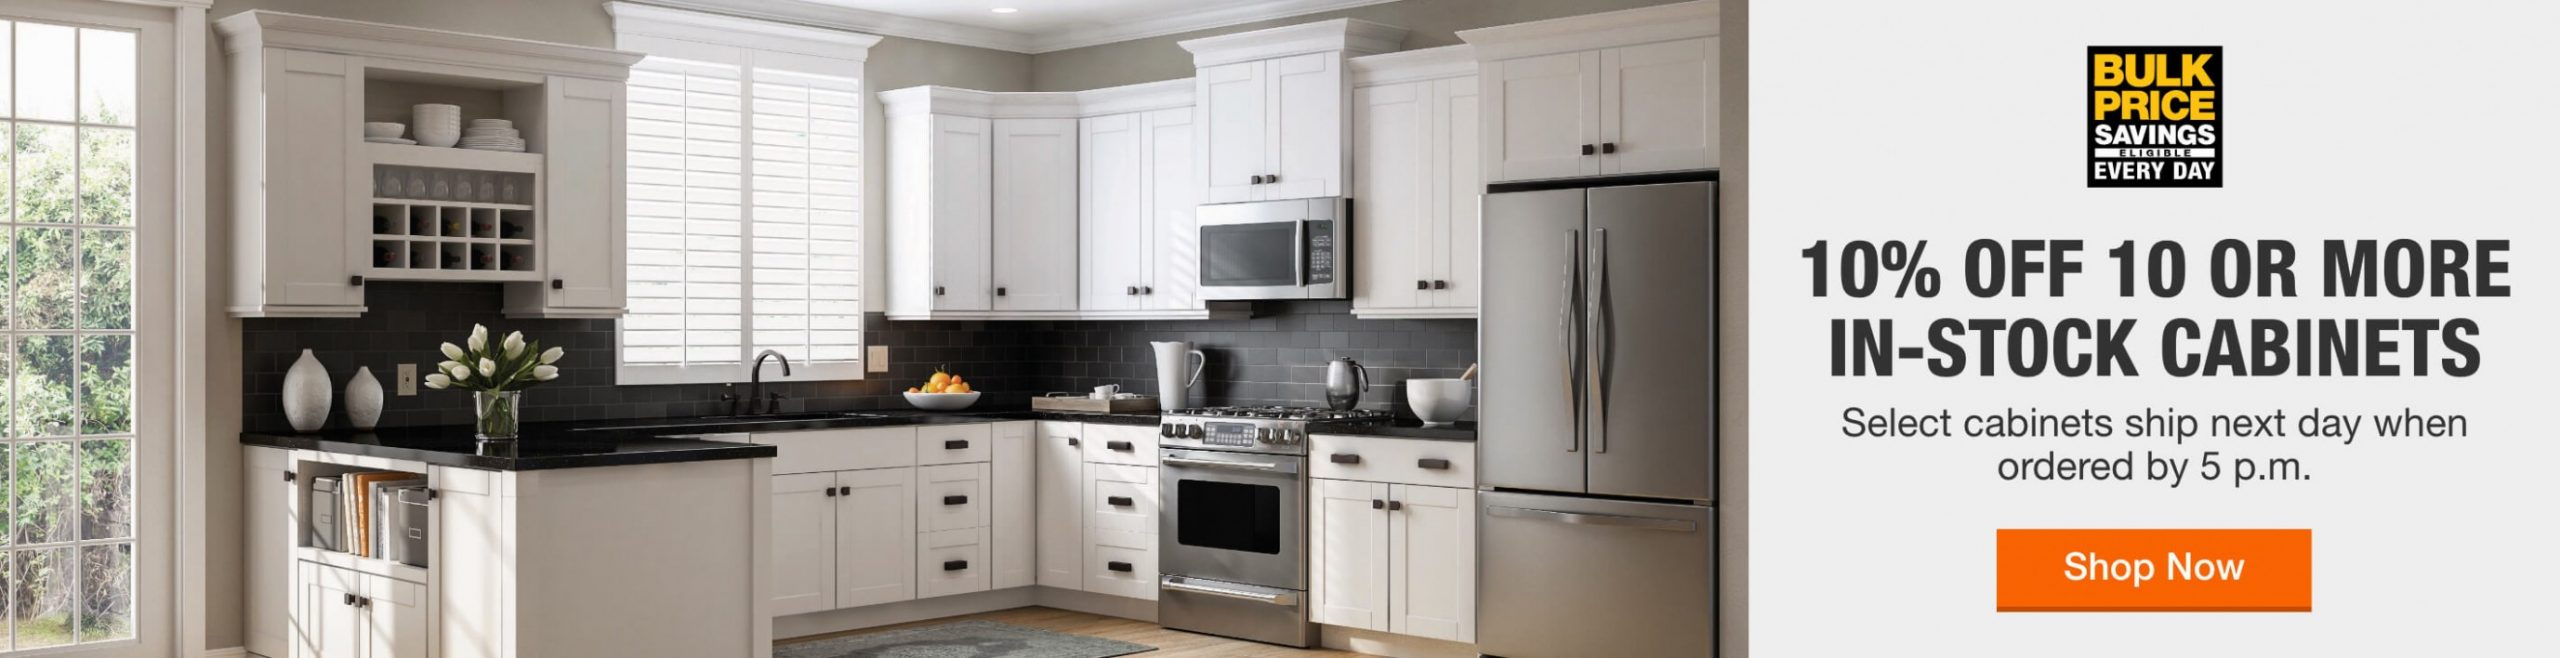 Kitchen Cabinets - The Home Depot - Wholesale Kitchen Cabinets And Granite